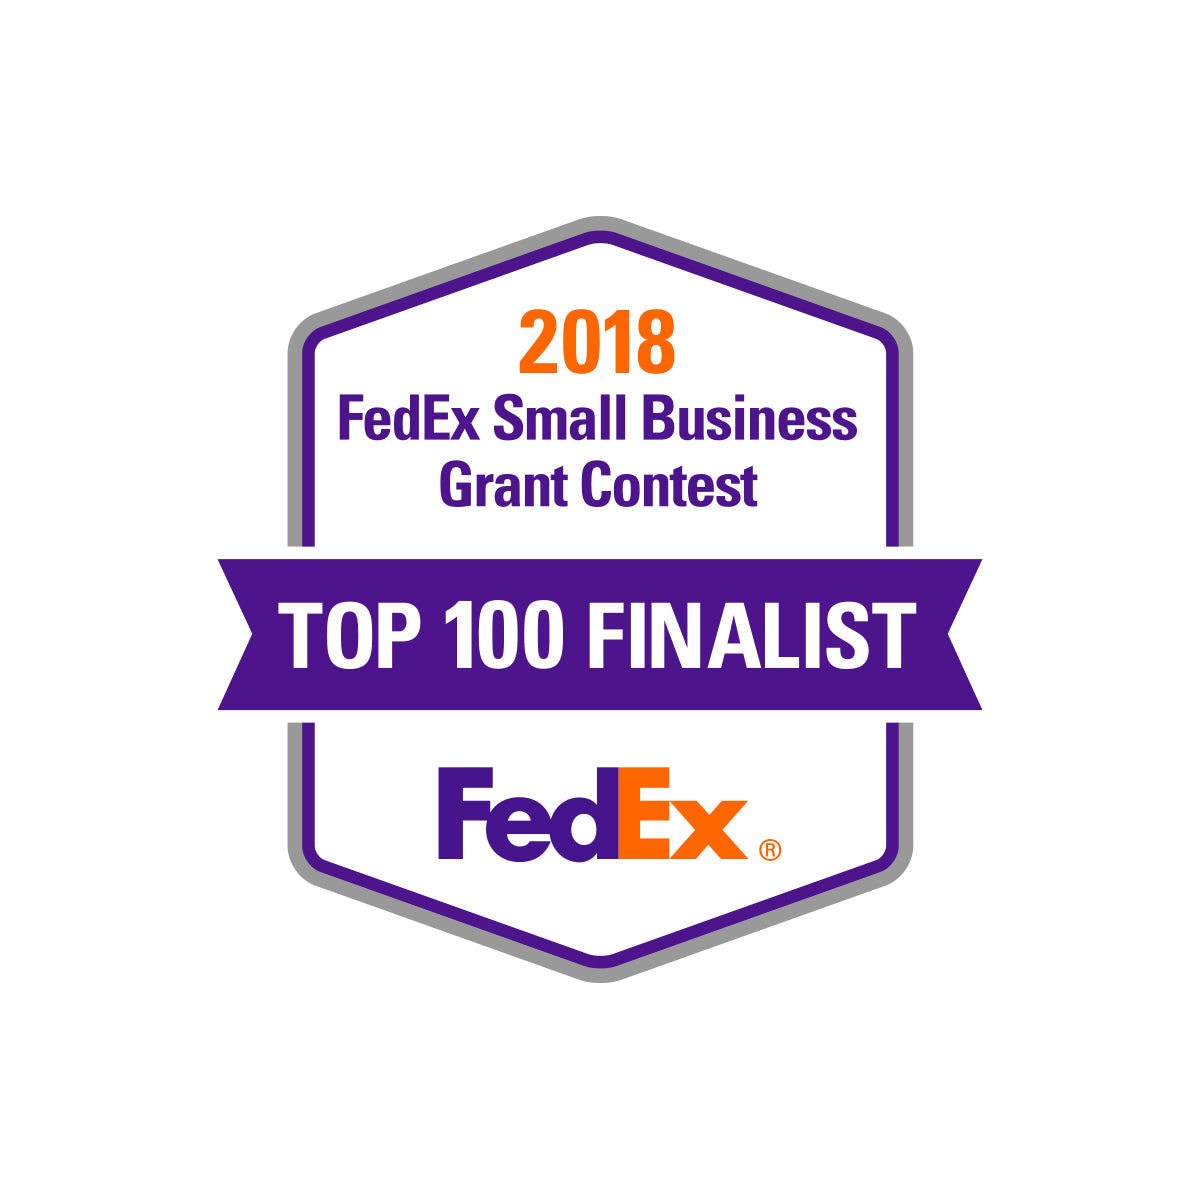 THE COMFY CUP CHRONICLES PART 47: FedEx Small Business Grant Contest Top 100 Finalist